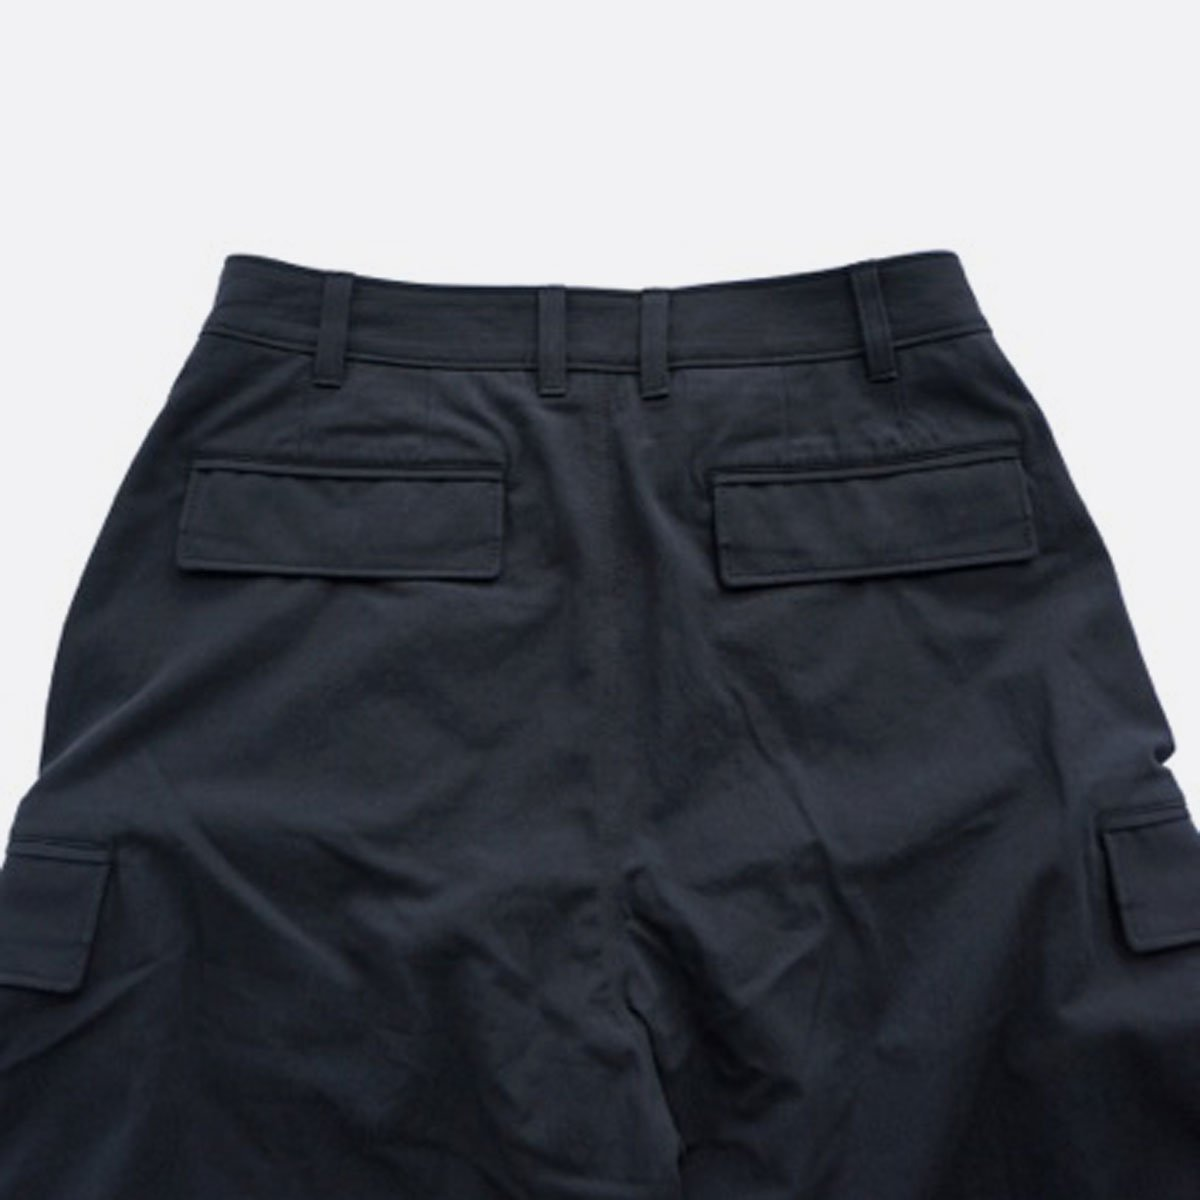 山内 COTTON VOILE 6PKT PANTS (black)4